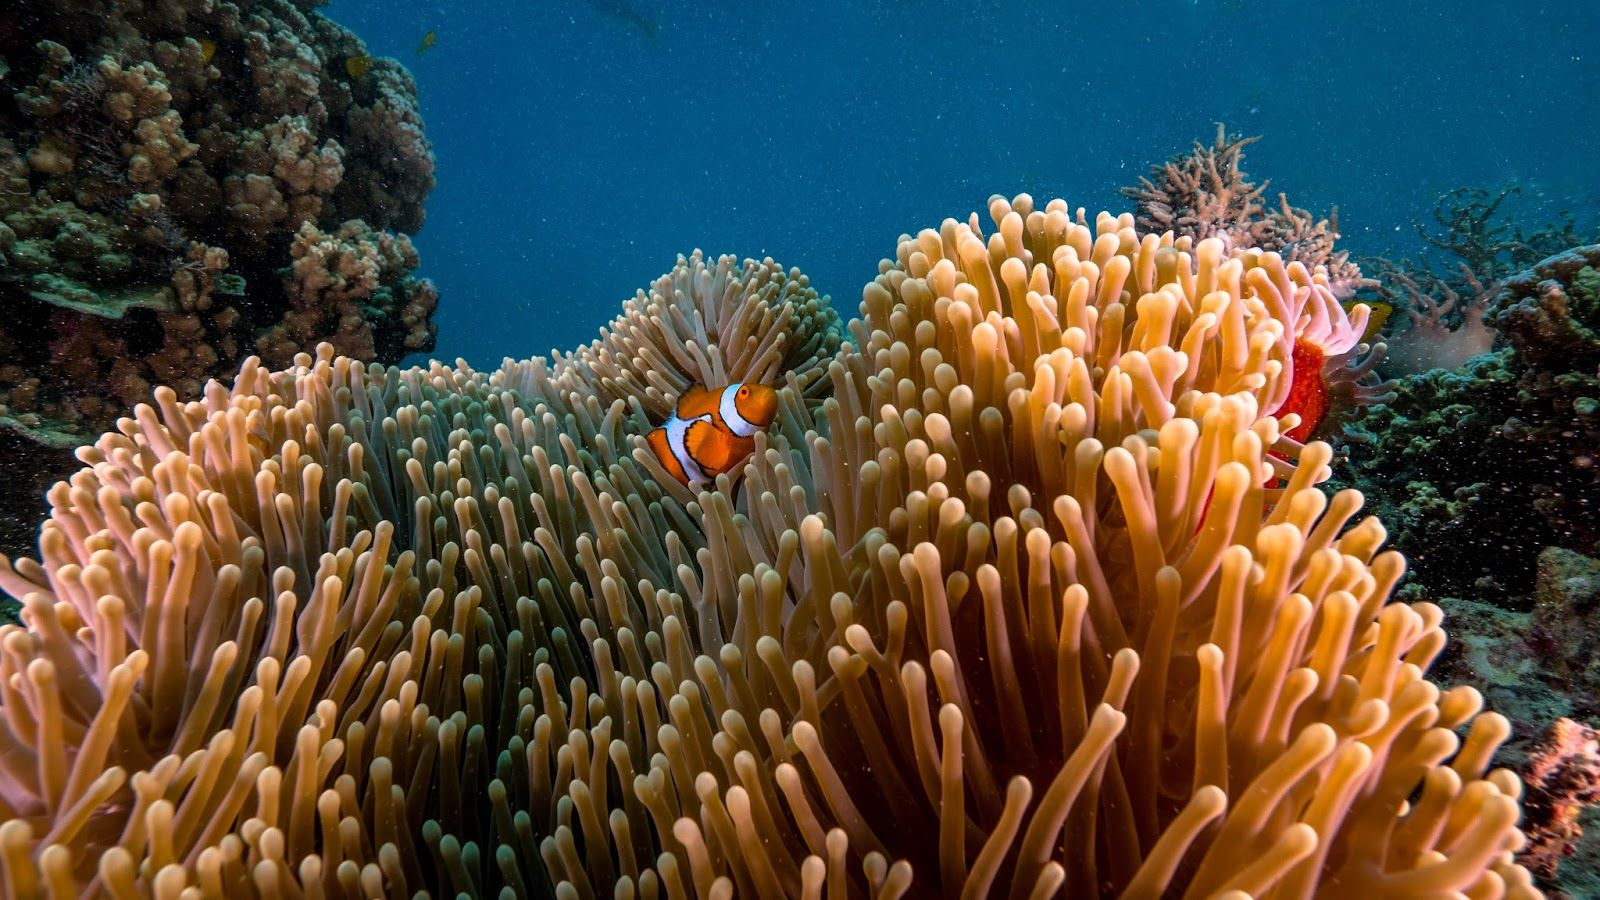 Some Nemo Clownfishes at the Great Barrier Reef in Australia 😍